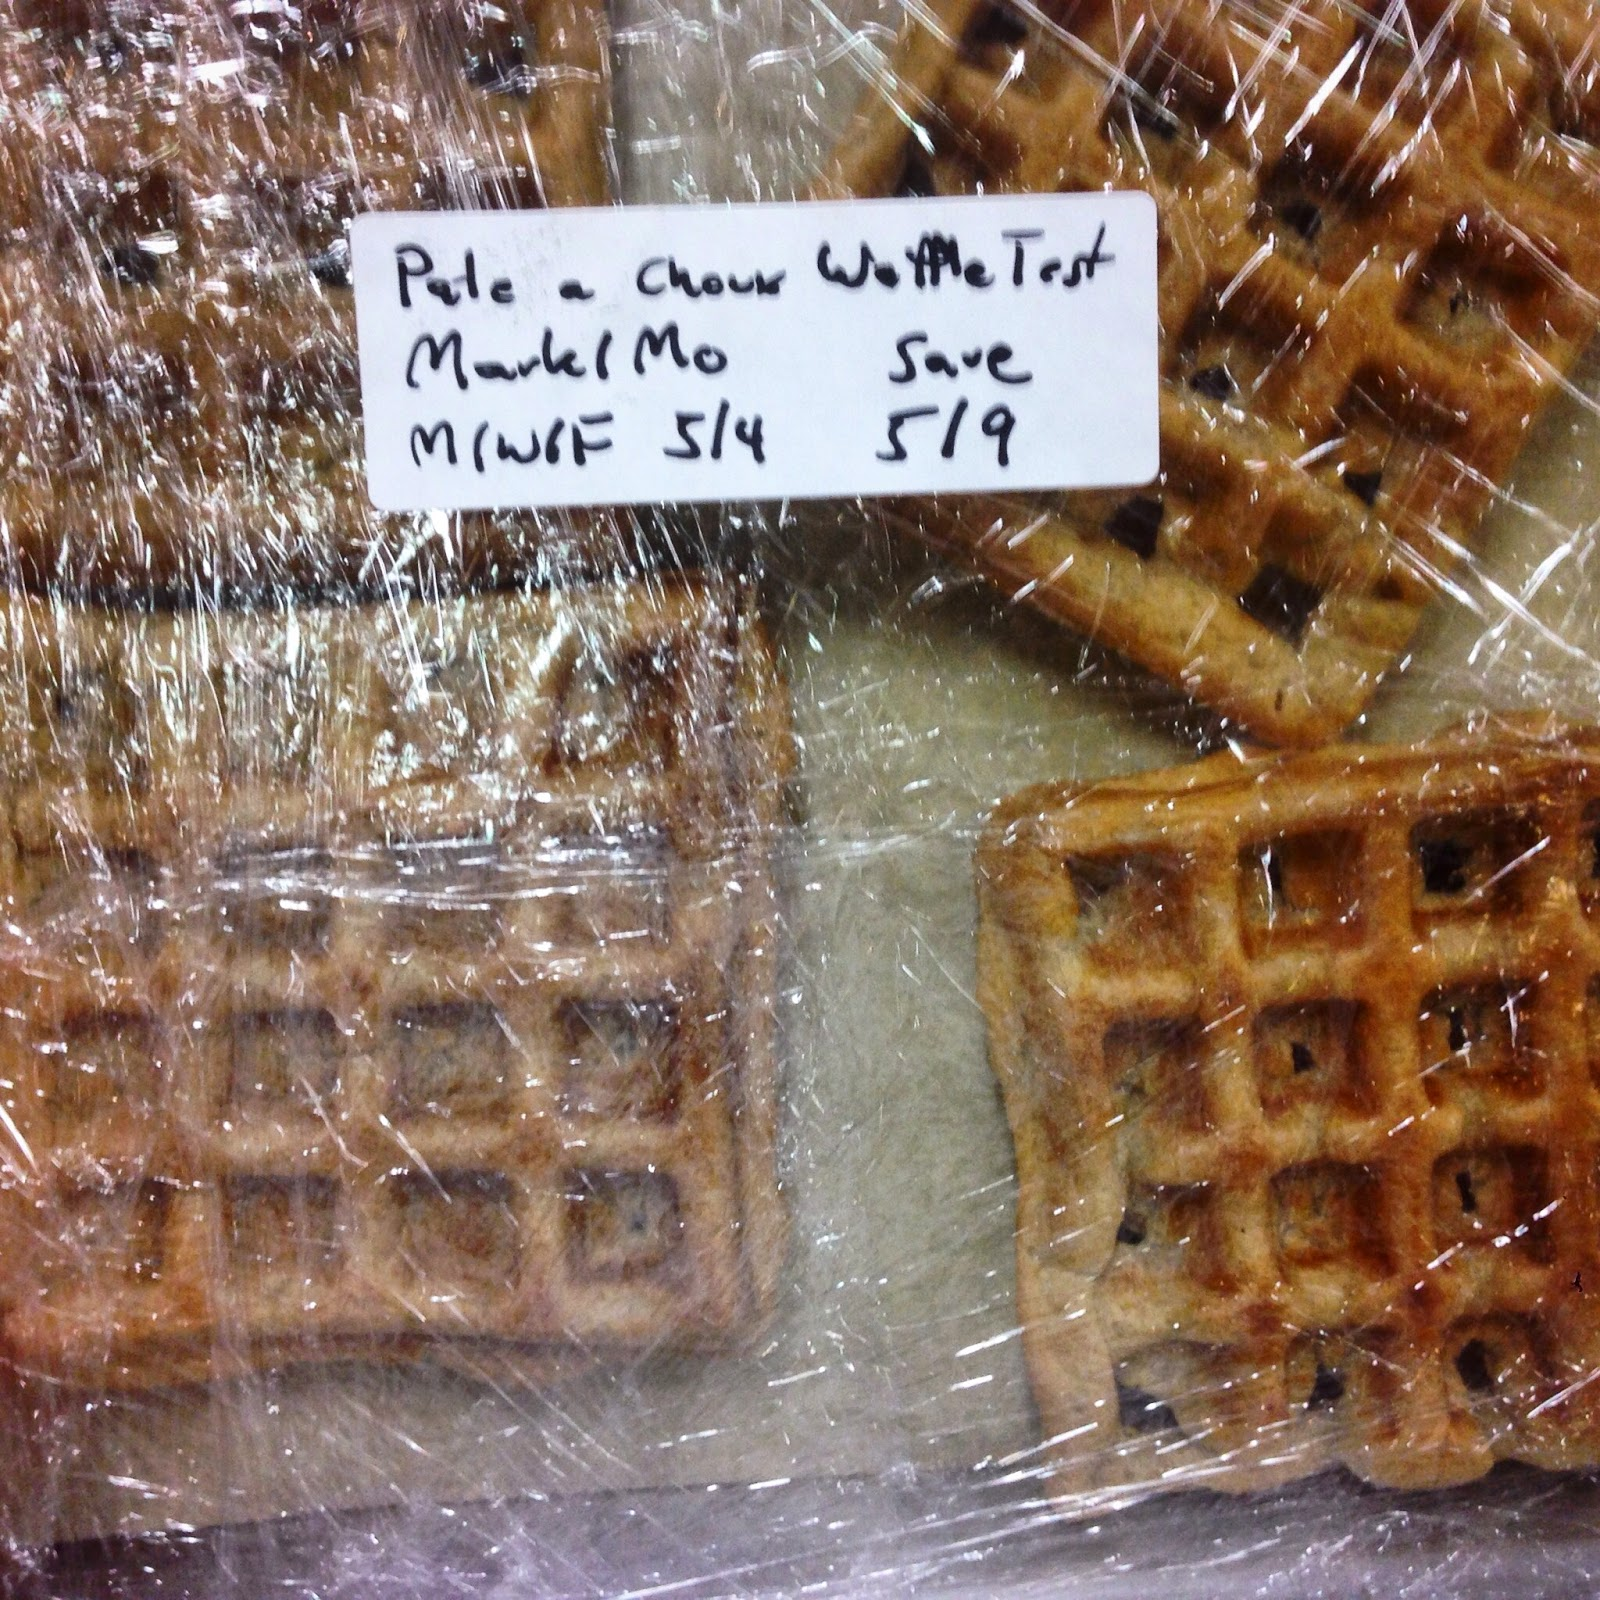 Pate a Choux Waffle Test